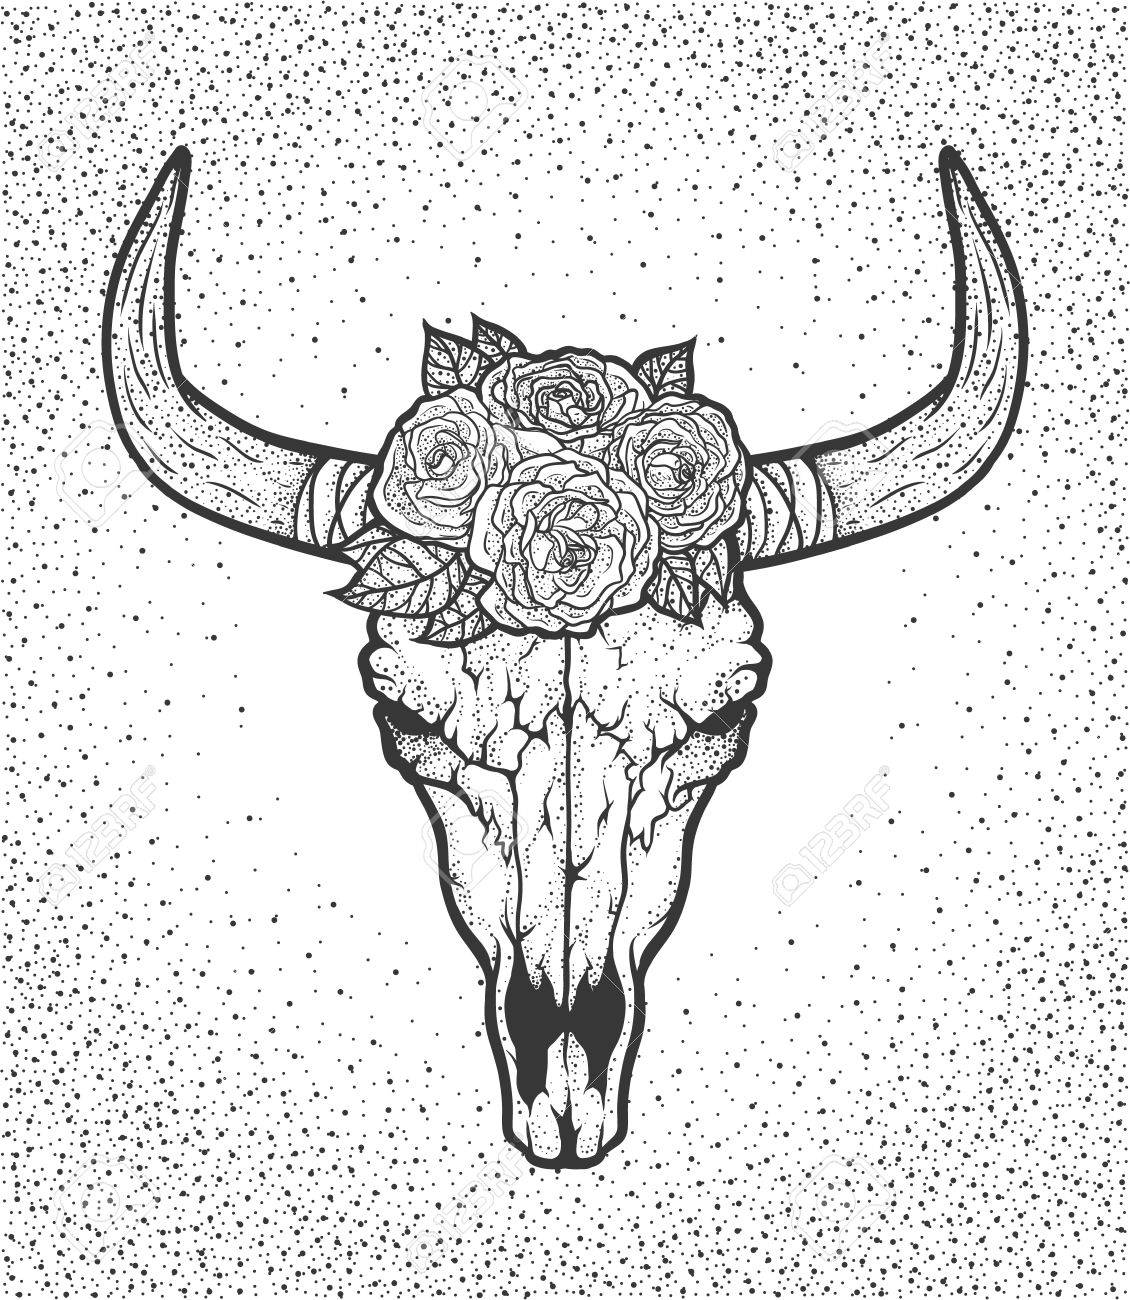 1130x1300 Bull Skull With Roses Native Americans Tribal Style. Dotted Tattoo